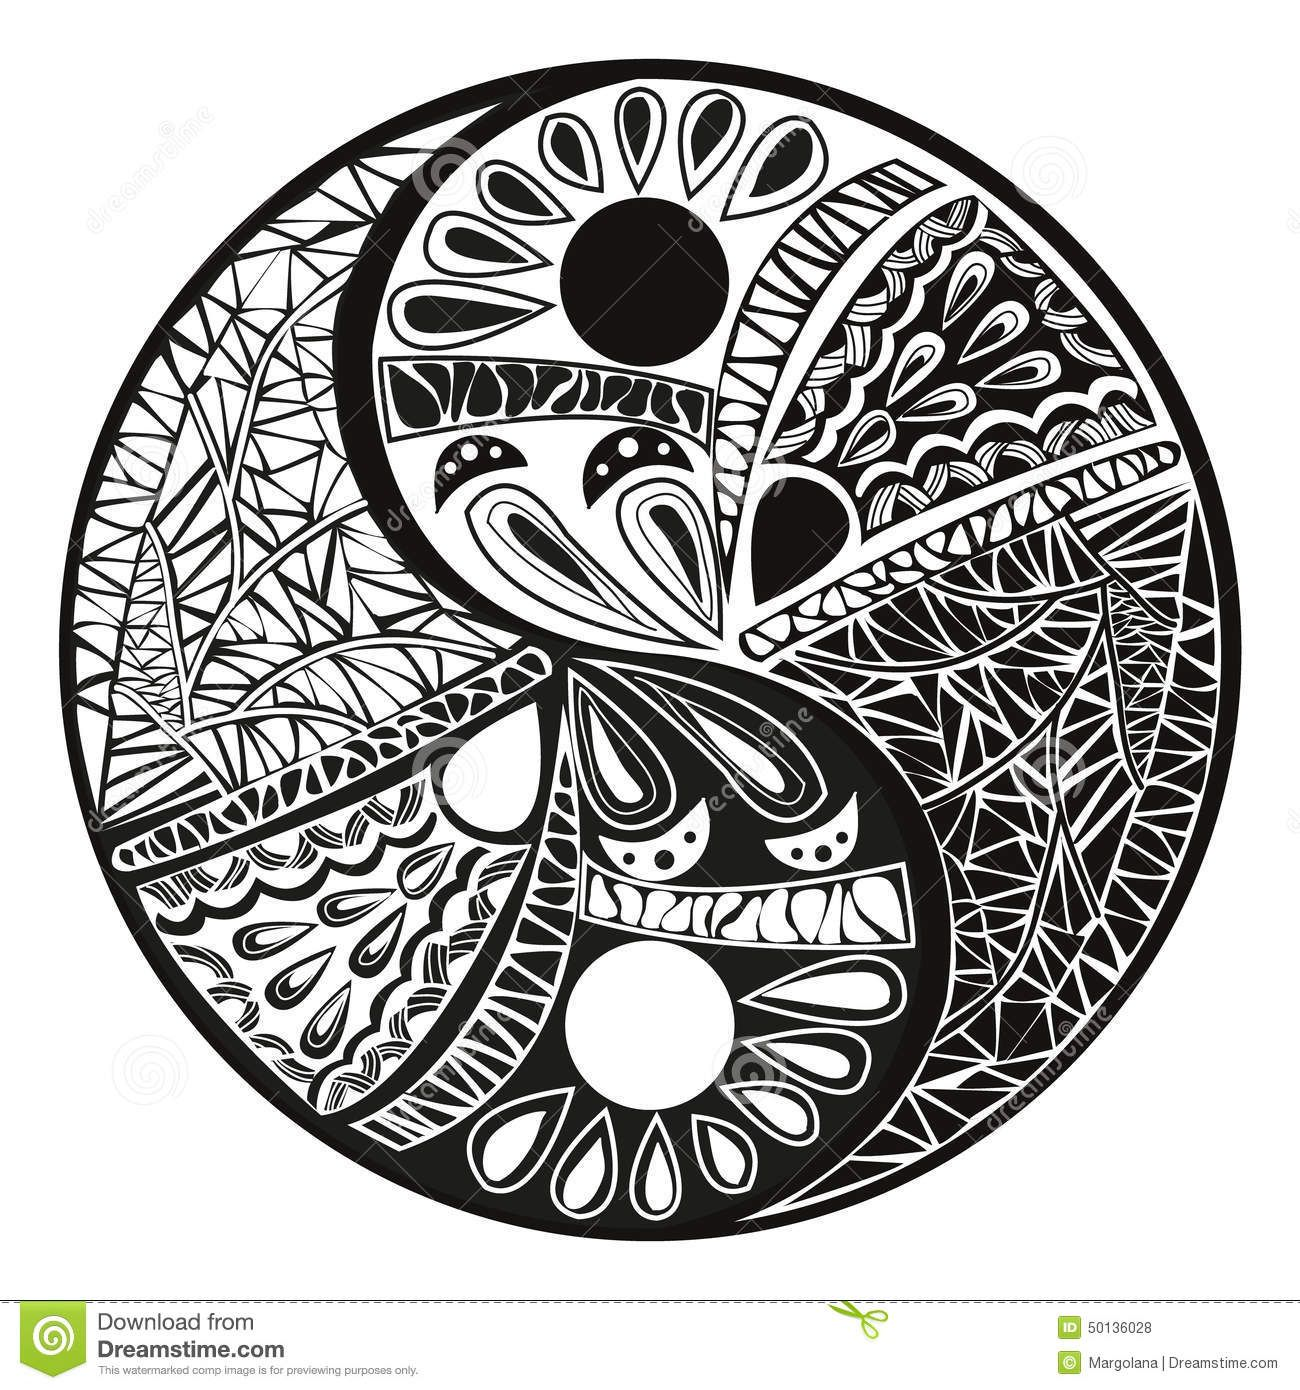 Coloring pages yin yang